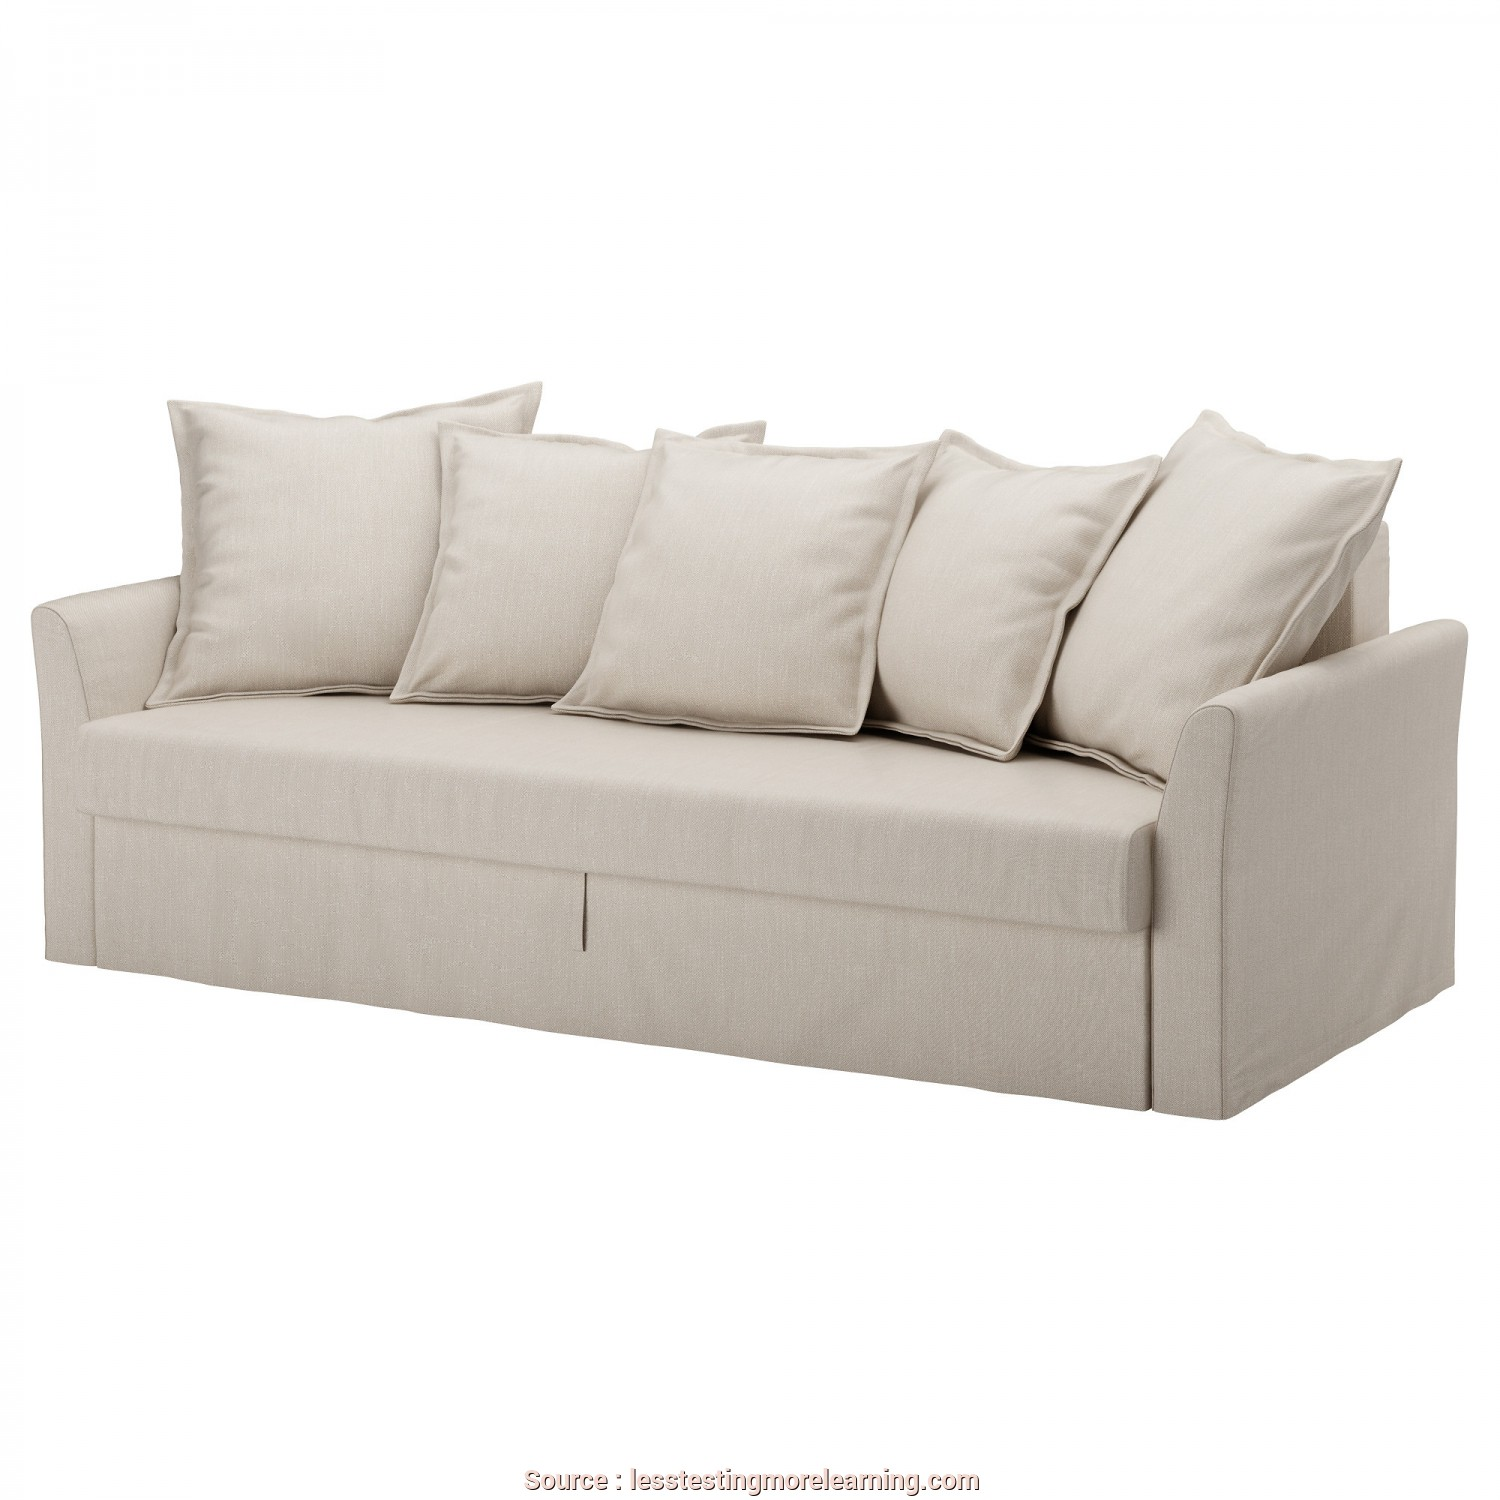 Futon Ikea Convertible, Bello Furniture: Sleeper Chair Ikea With Different Styles, Fabrics To